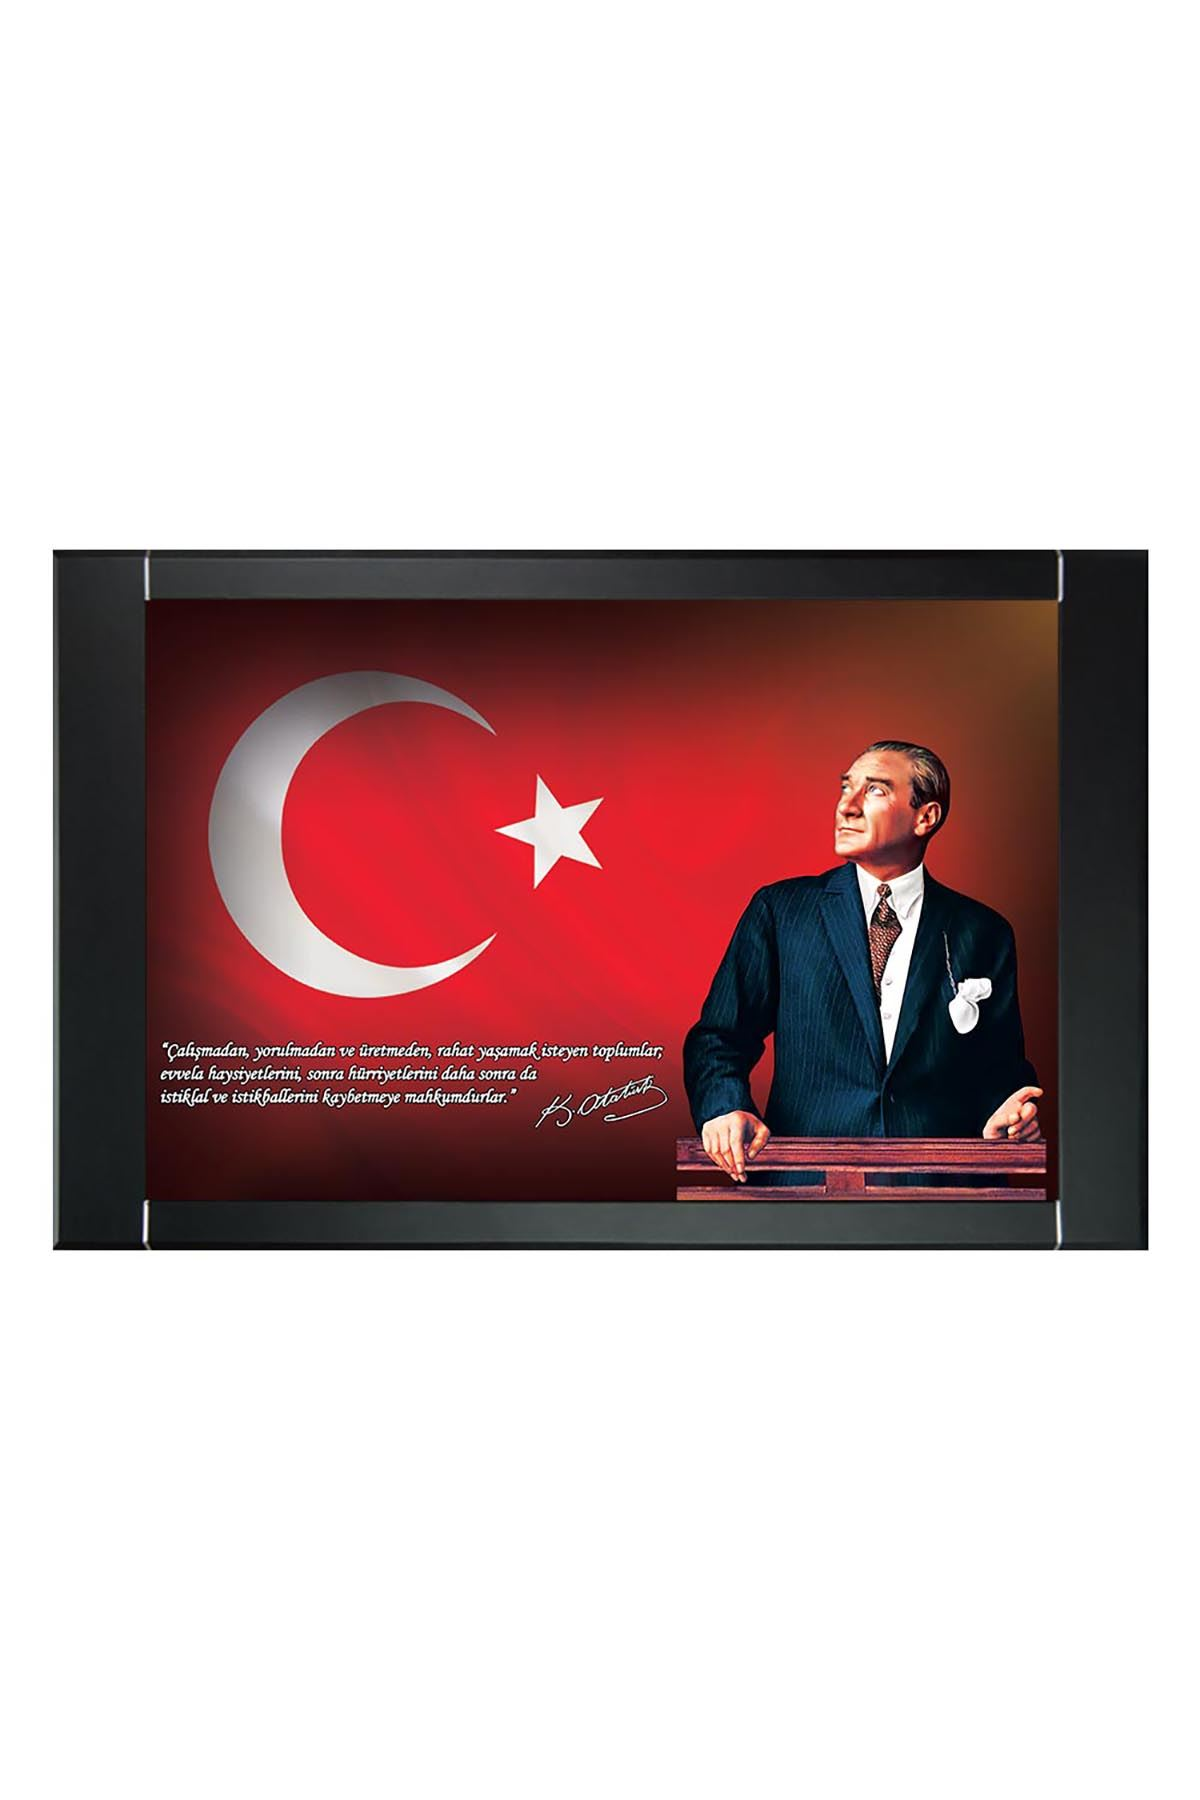 Atatürk Printed Manager Board | Printed Manager Board | Leather Framed Board | High Quality Manager Board